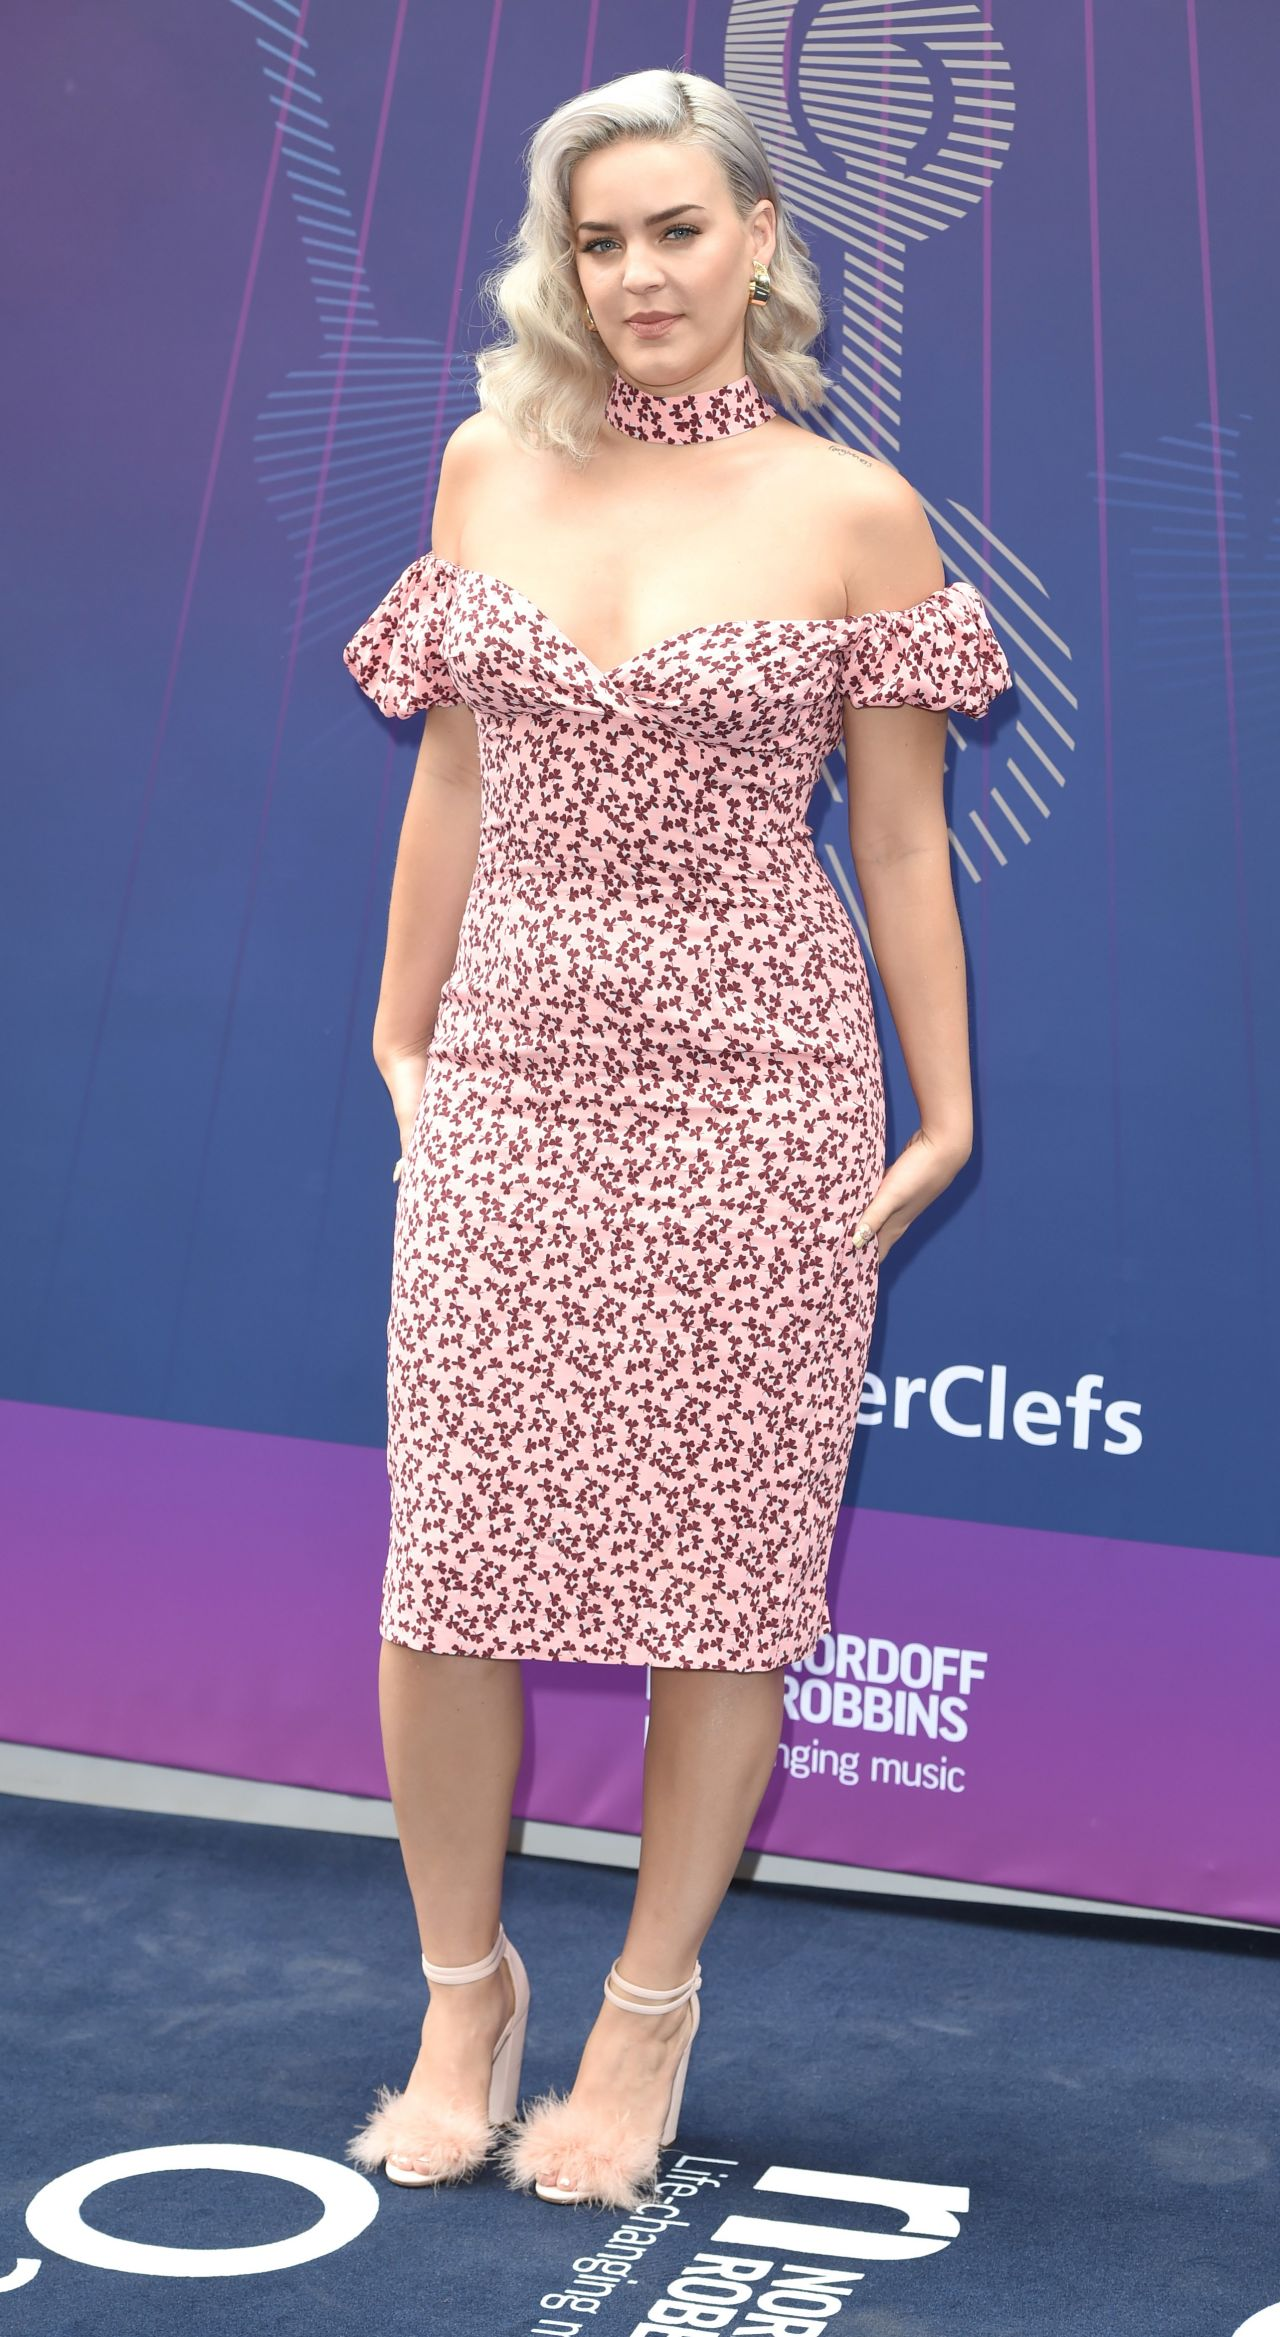 Anne Marie Nordoff Robbins O2 Silver Clef Awards In